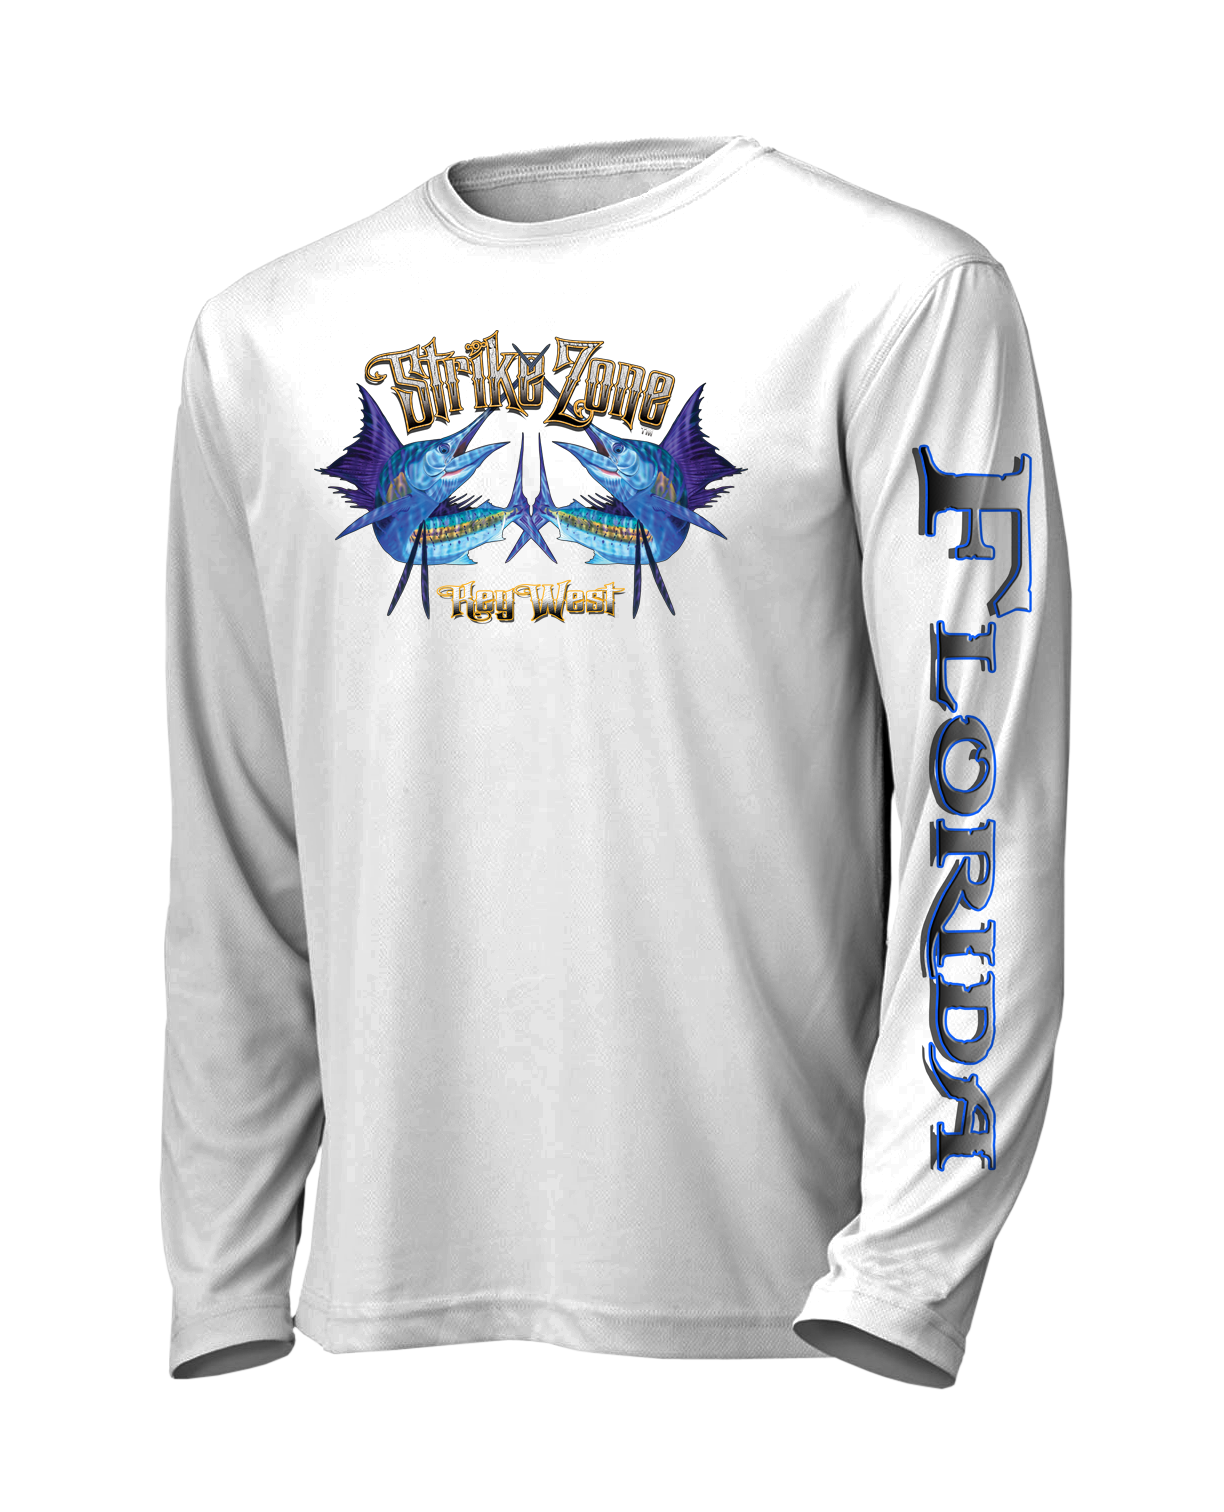 jason-mathias-strike-zone-offshore-slam-fishing-shirt-white-front.png